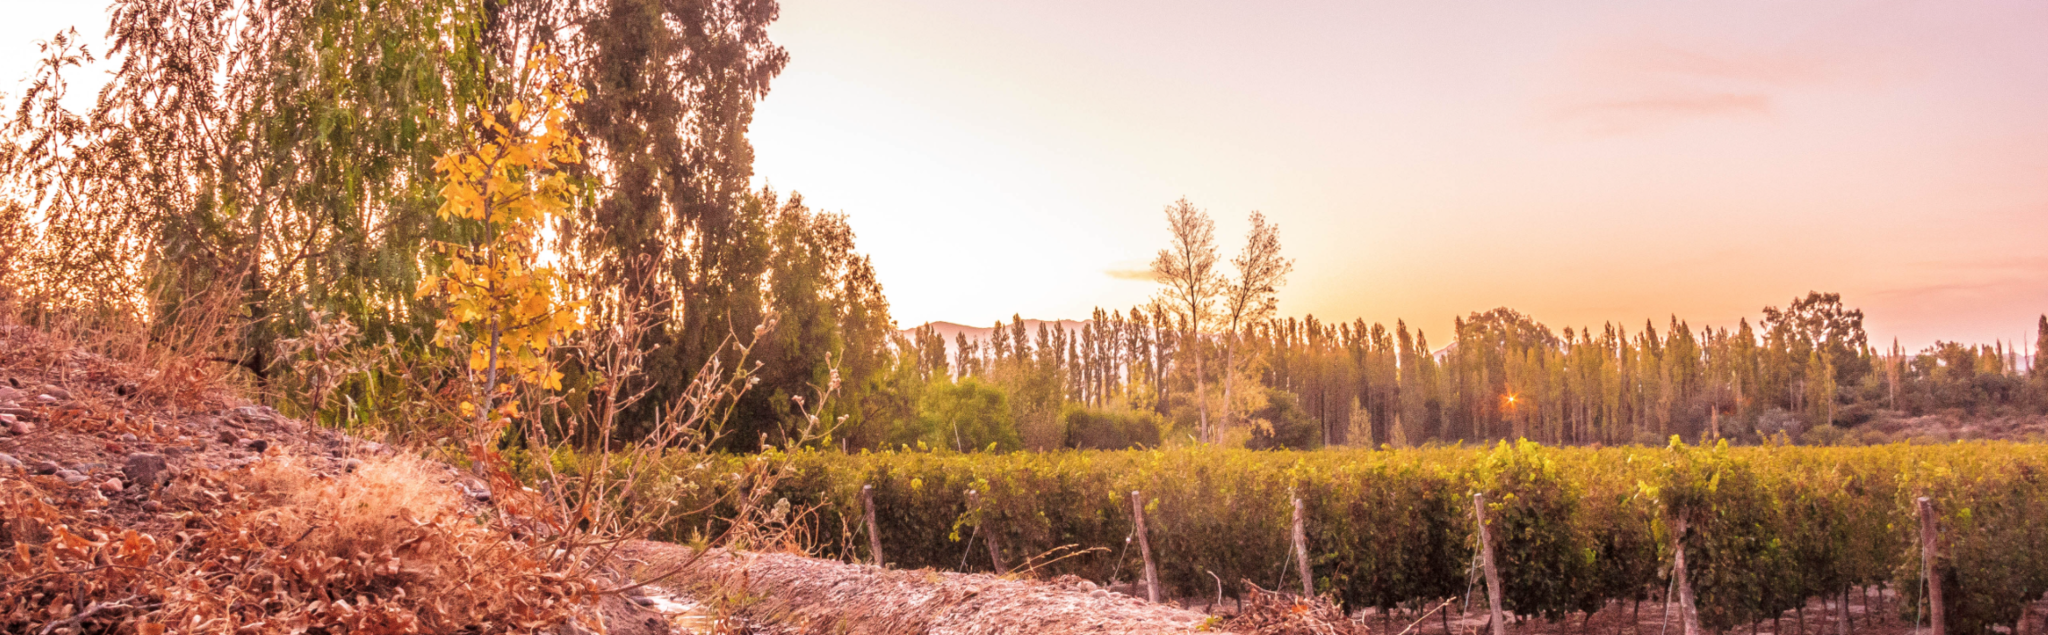 Marale Wines Cover Image